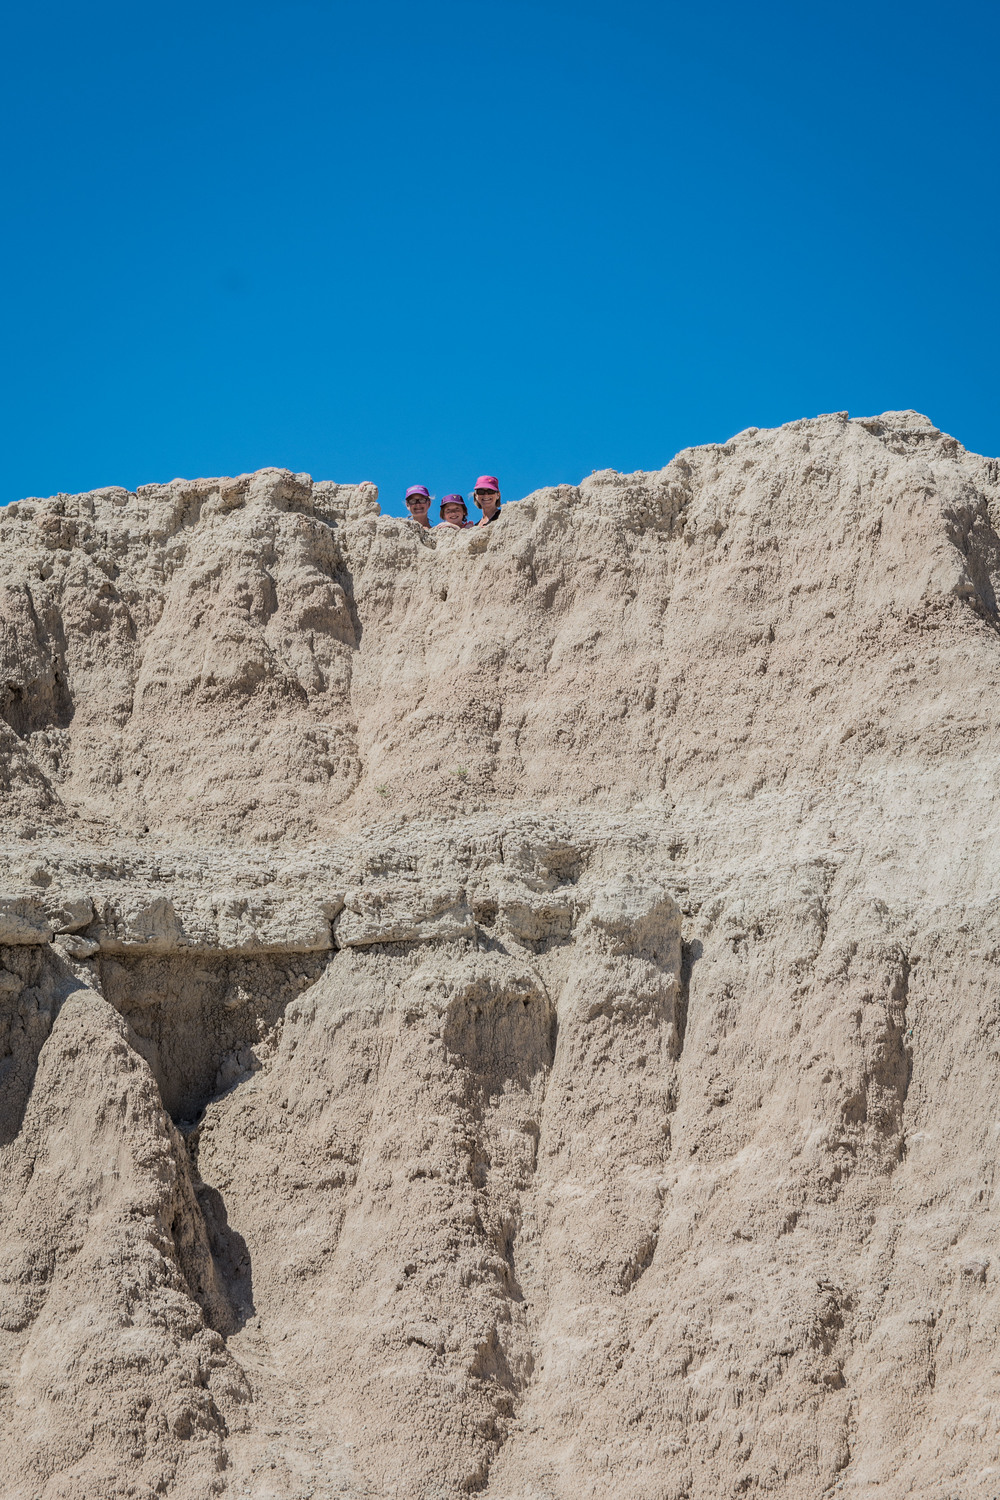 Had a good day of scrambling in Badlands NP.